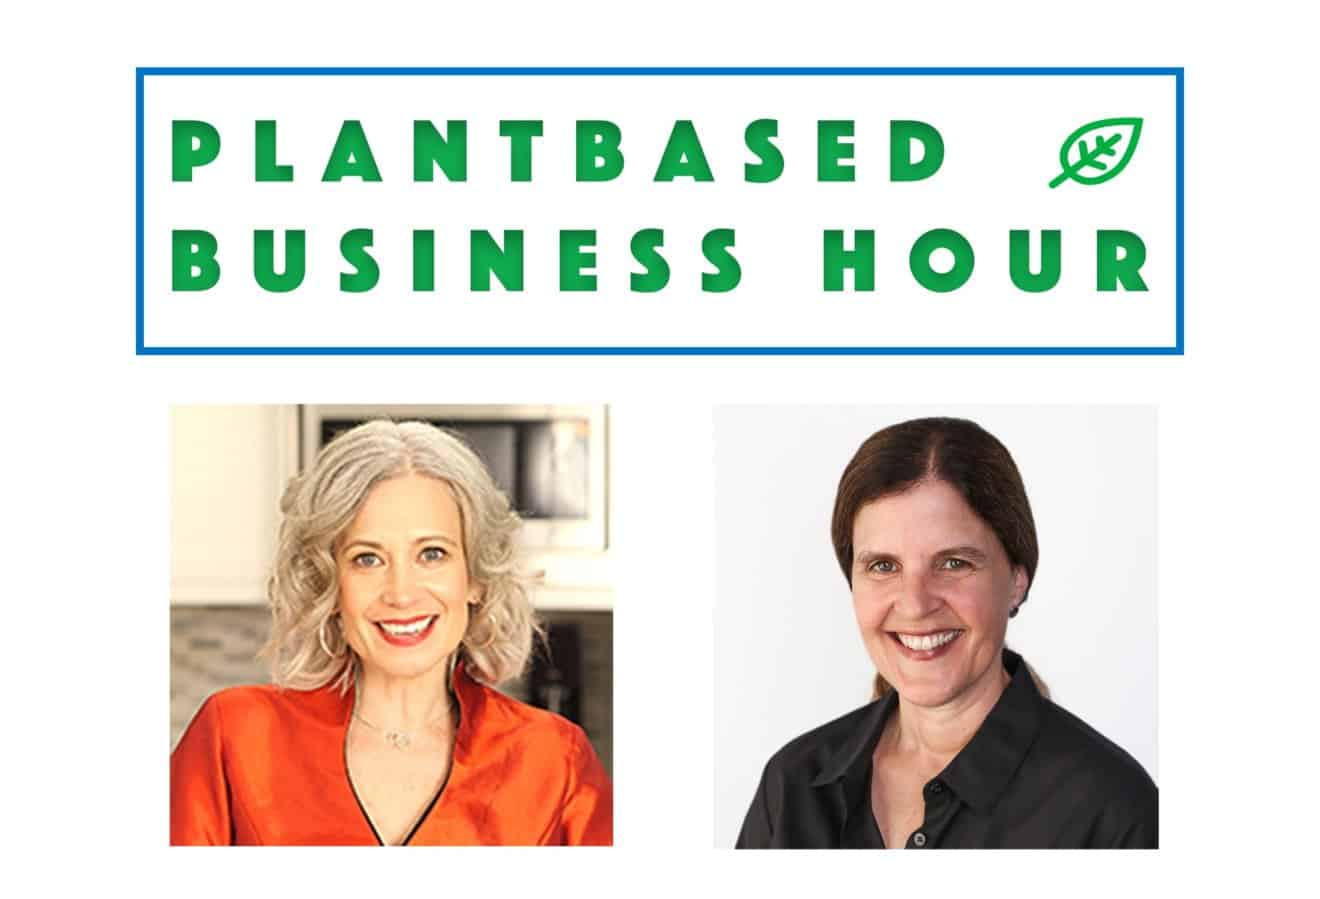 Michele Simon of the PBFA: Do Plant-Based Businesses Compete on More than Price, Taste, Convenience and Nutrition?